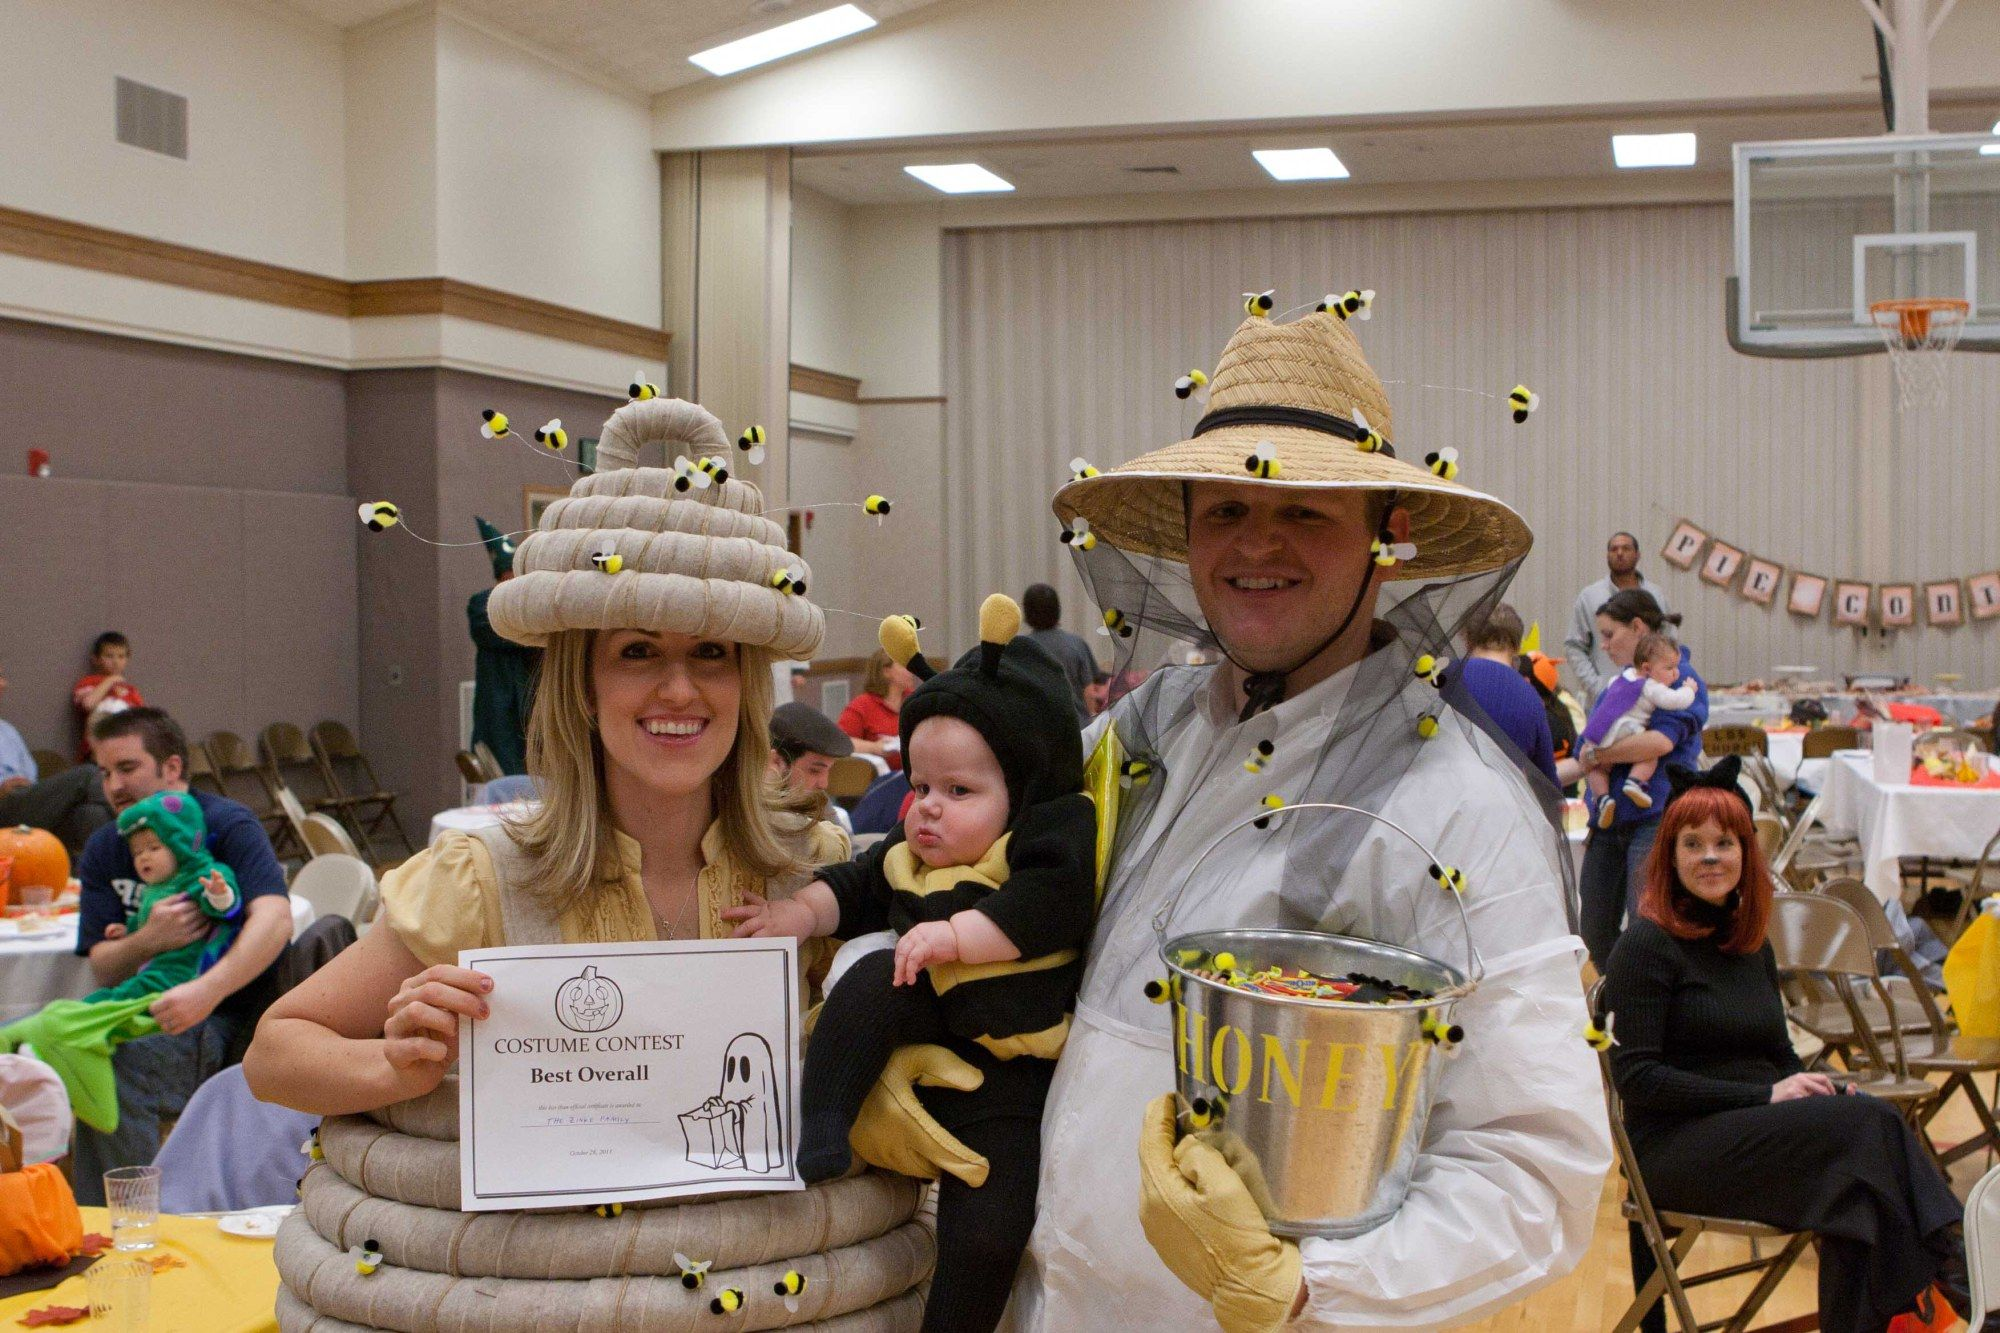 Our little honey bee costume contest and happy halloween